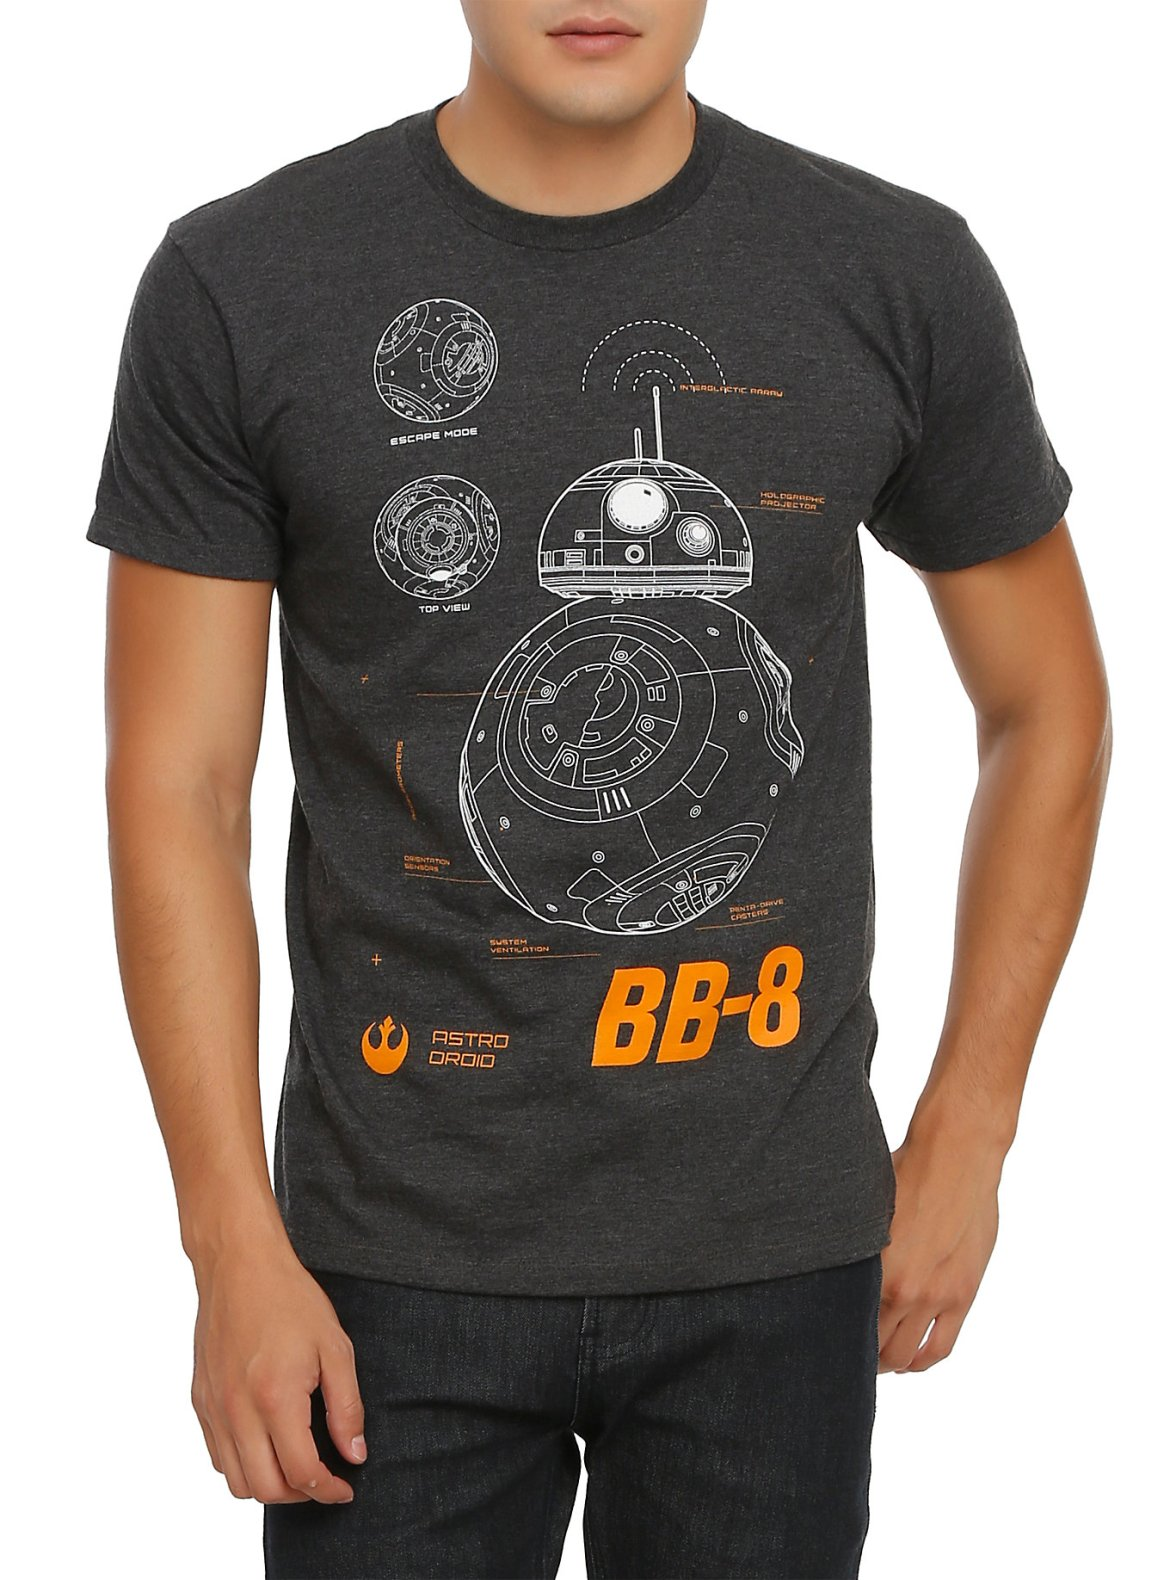 Top 5 Star Wars Shirts You Must Own